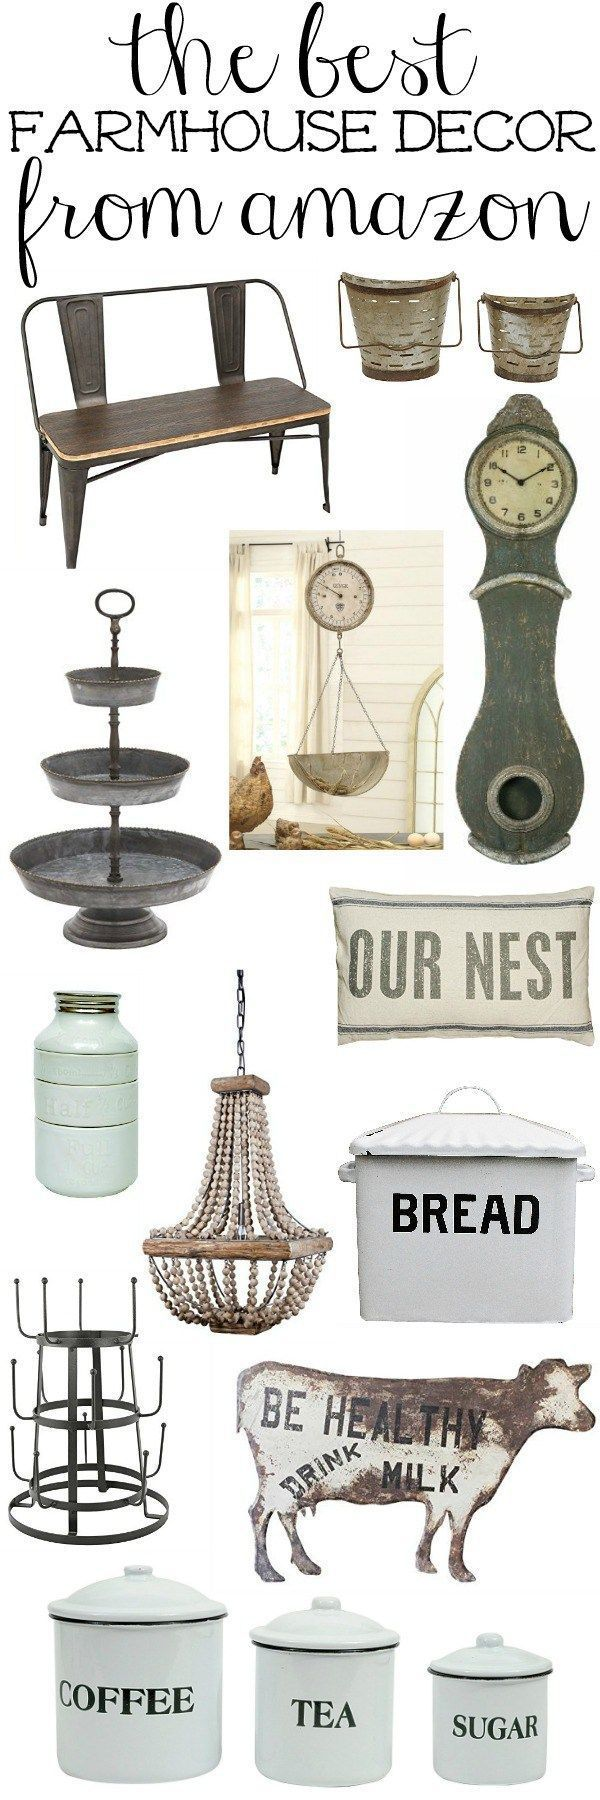 awesome The Best Farmhouse Decor From Amazon - by http://www.cool-homedecorations.xyz/asian-home-decor-designs/the-best-farmhouse-decor-from-amazon/